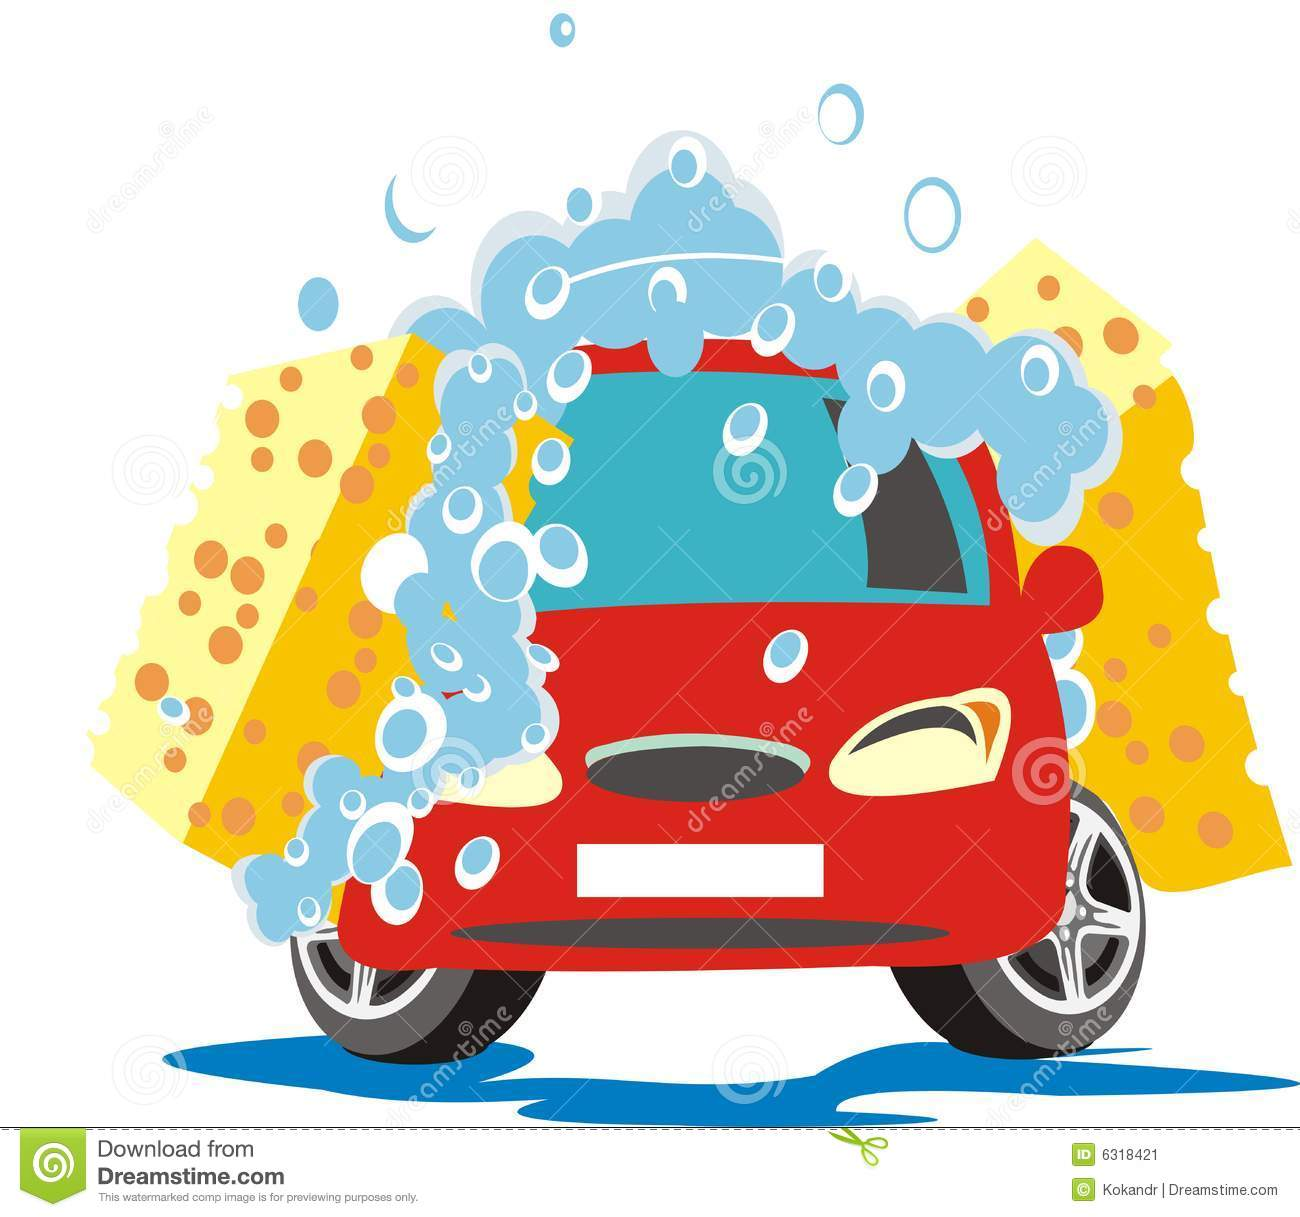 soapy car wash business plan